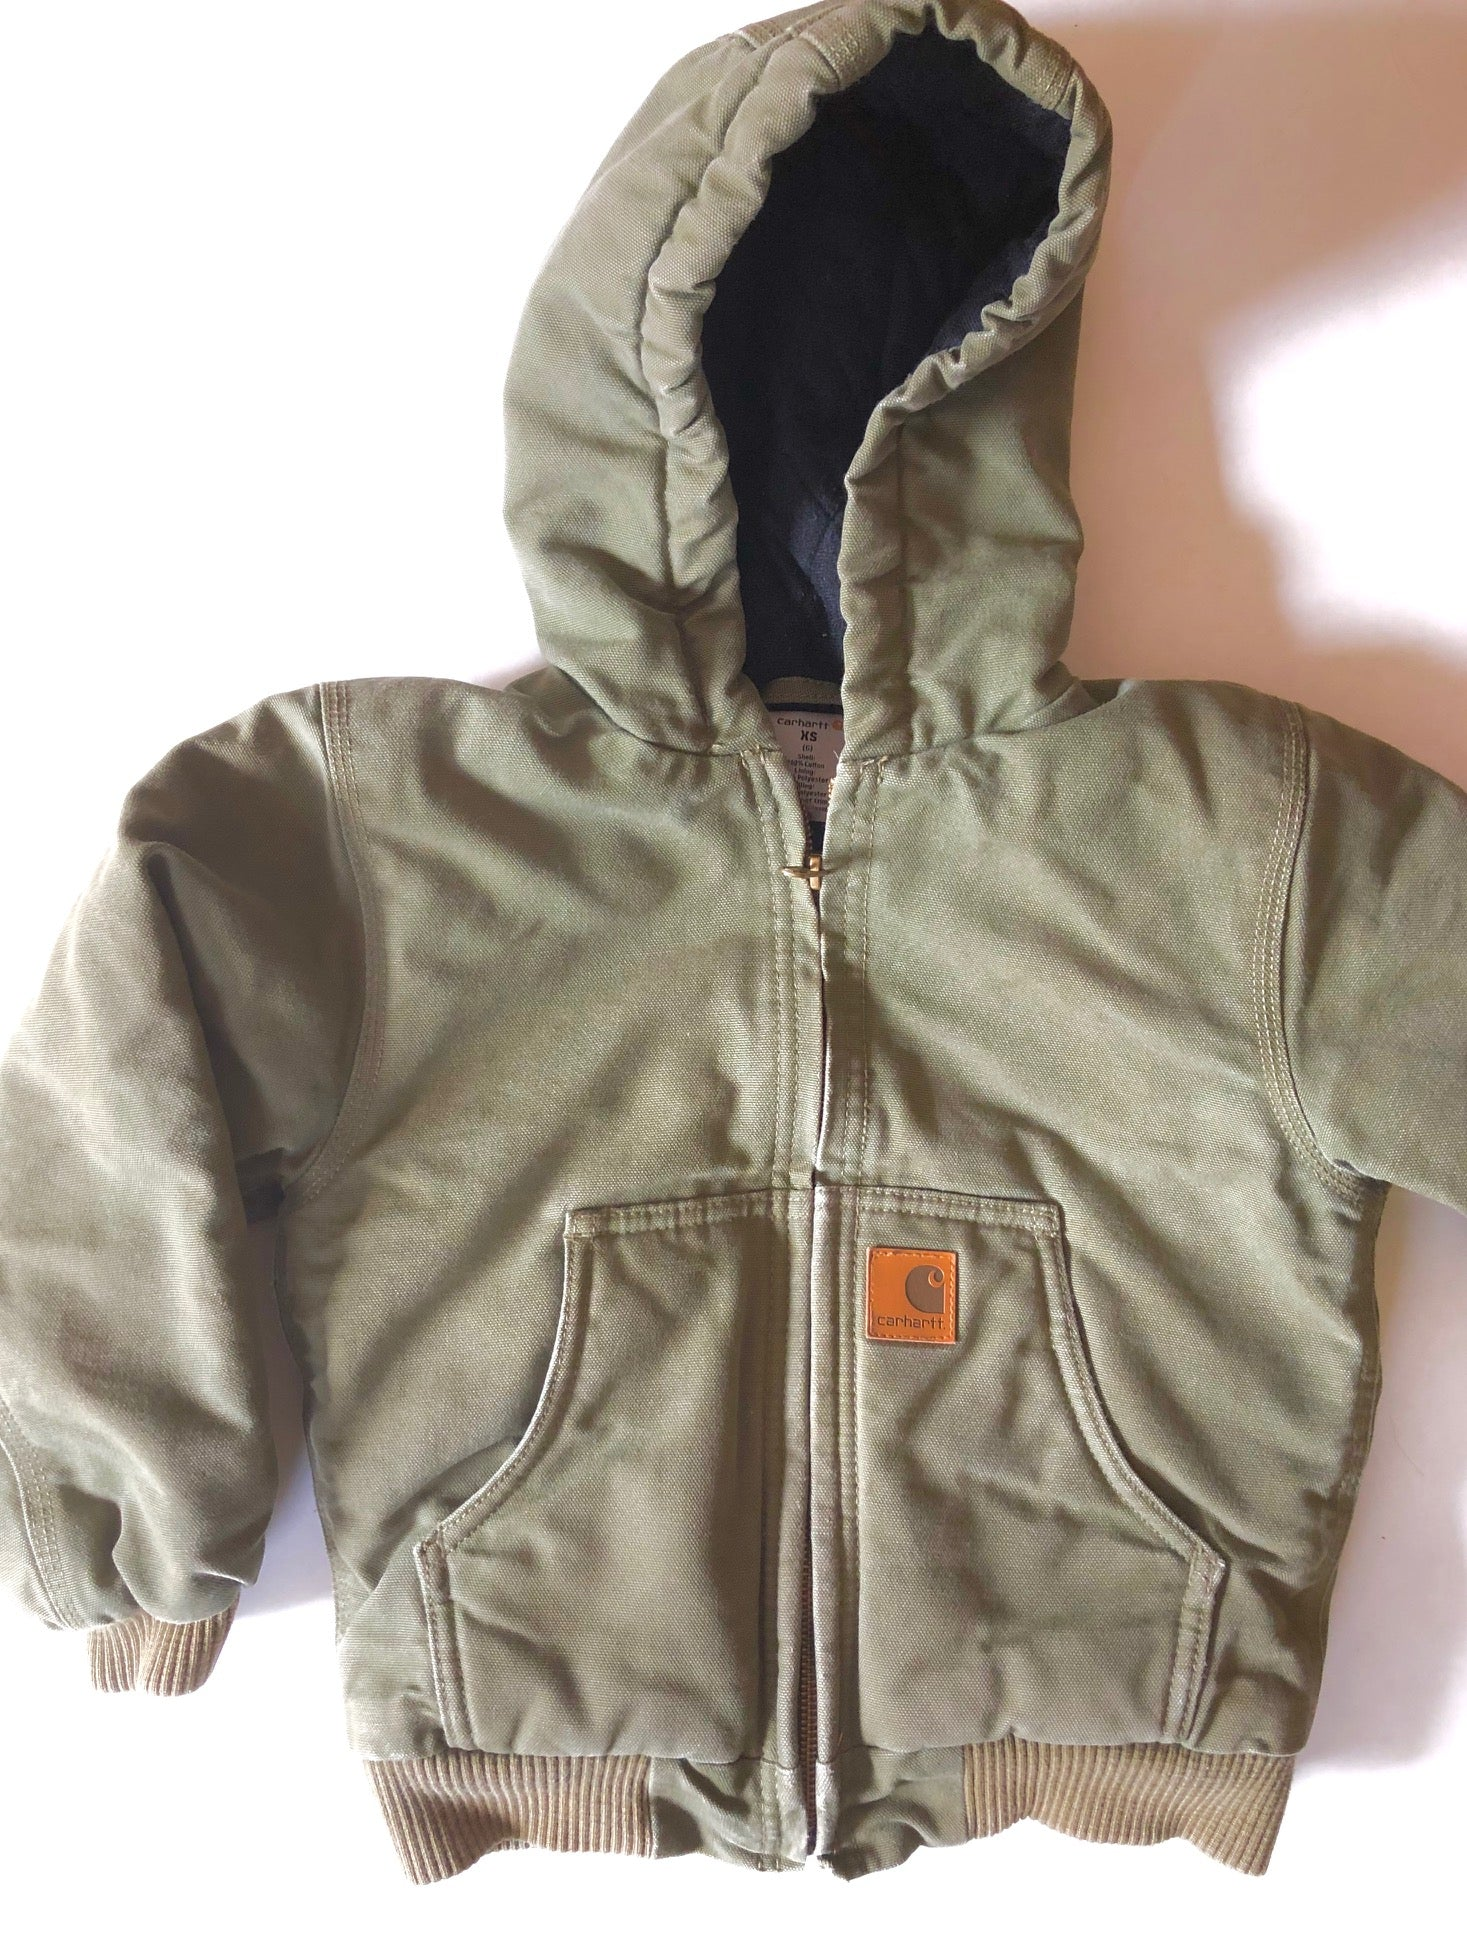 Carhartt Khaki Hooded Jacket size 6